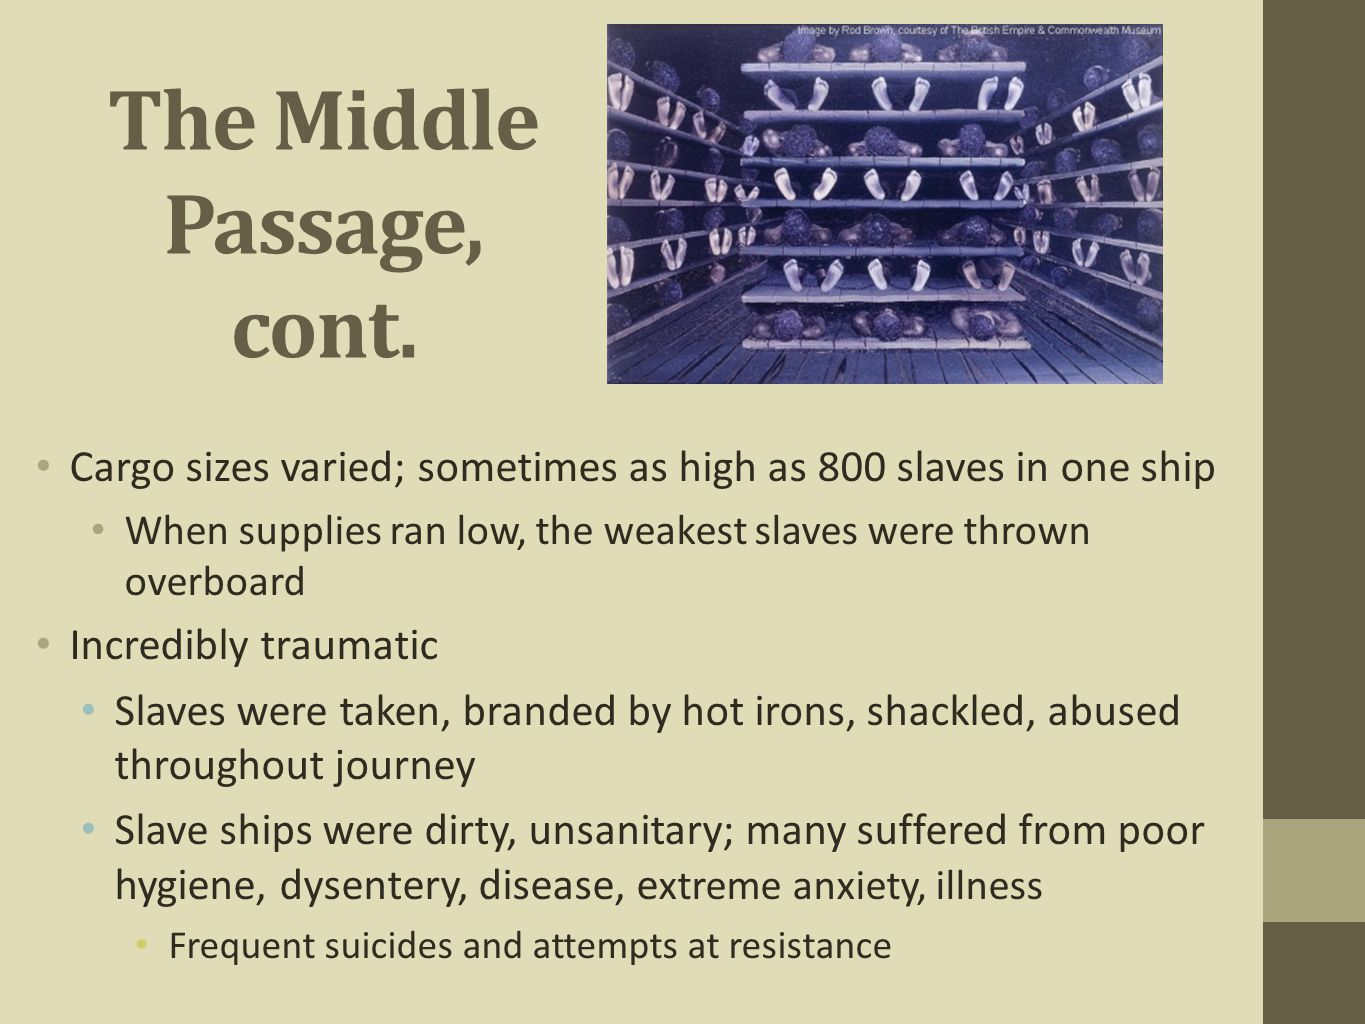 The Middle Passage, cont.